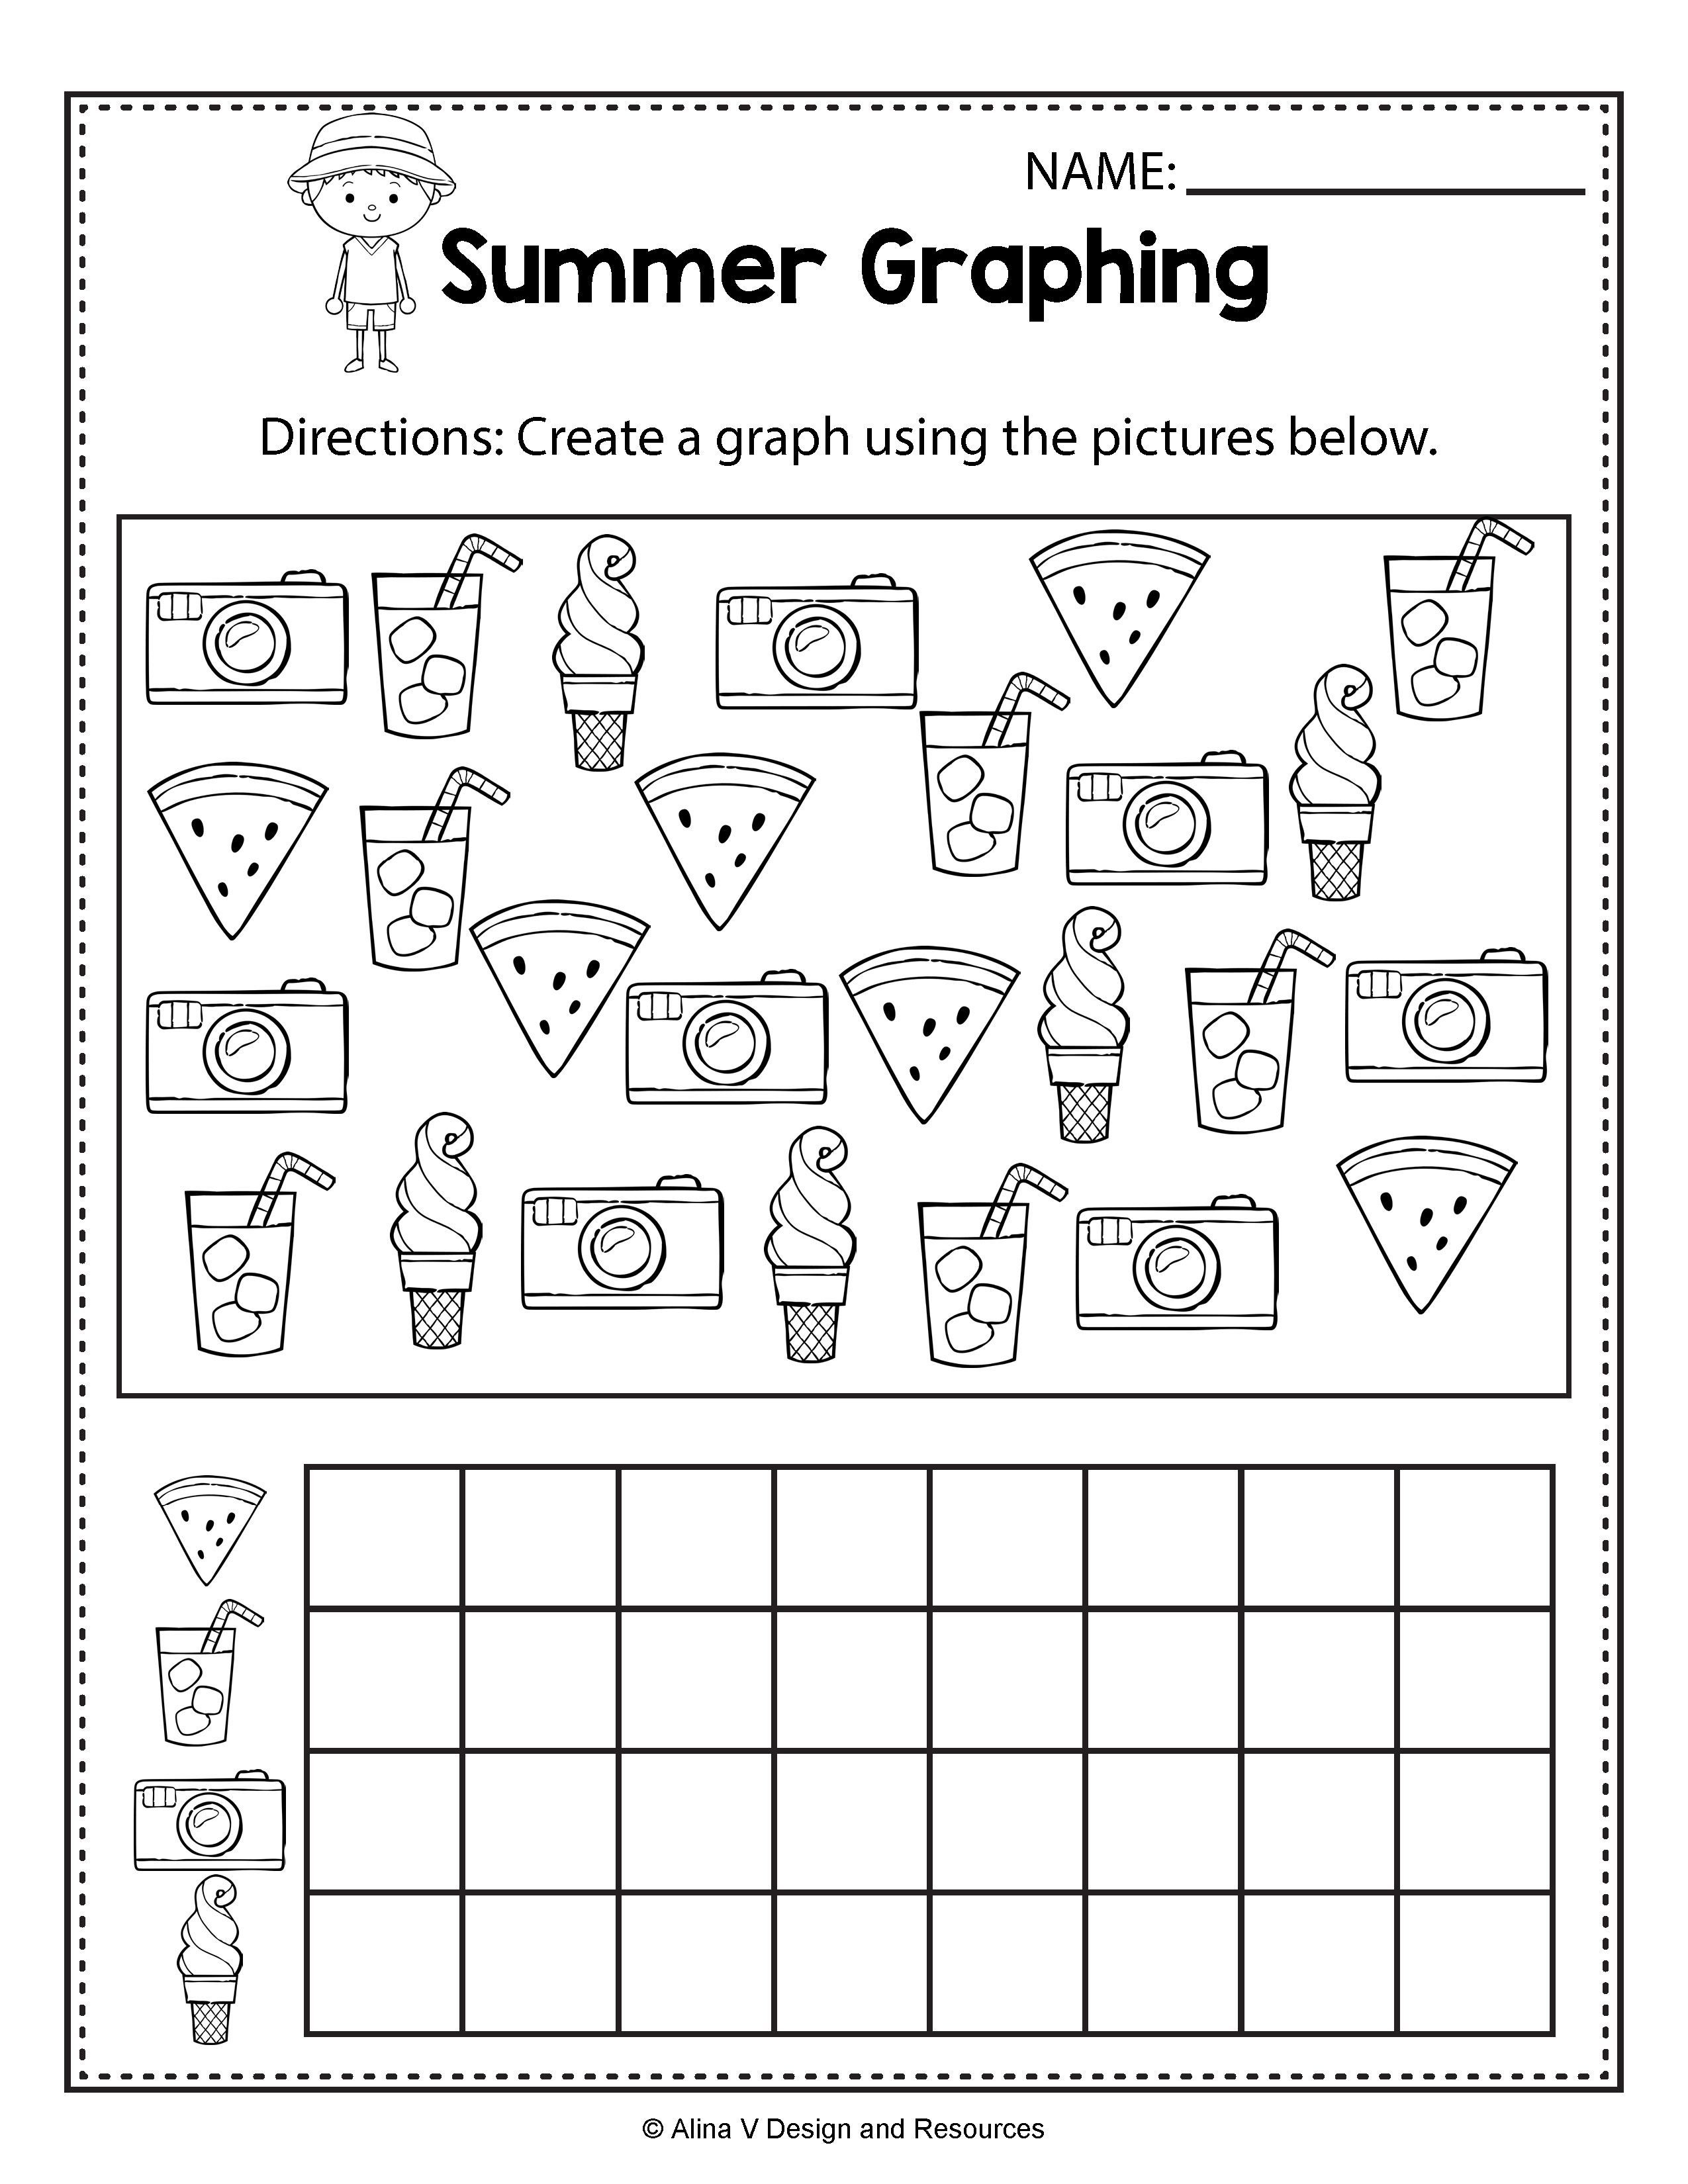 hight resolution of Summer Graphing - Summer Math Worksheets and activities for preschool